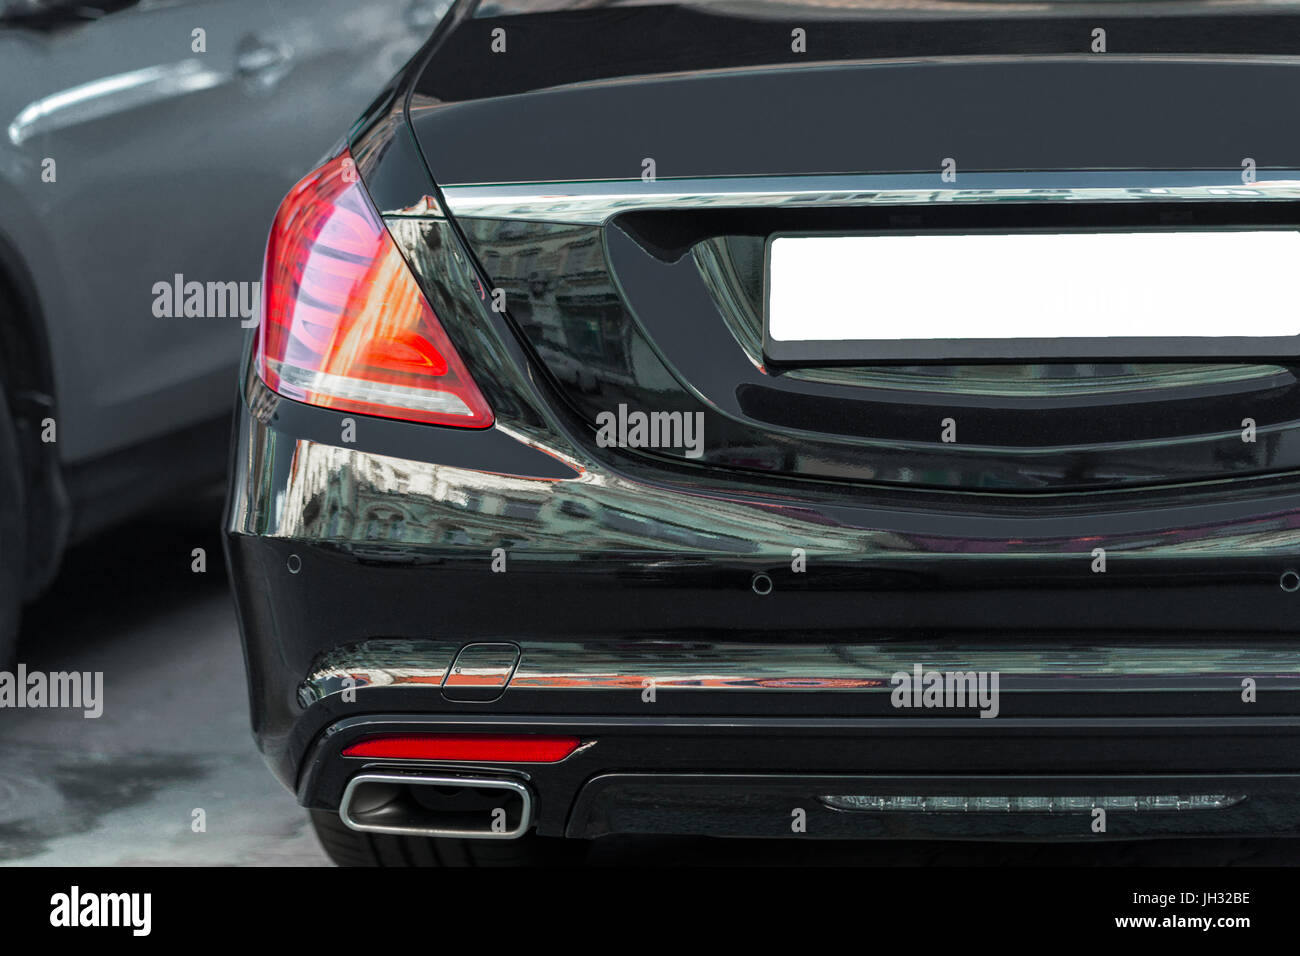 Back view of big luxury expensive sedan car trunk. Black colored. LED red tail lights . Empty license plate with - Stock Image